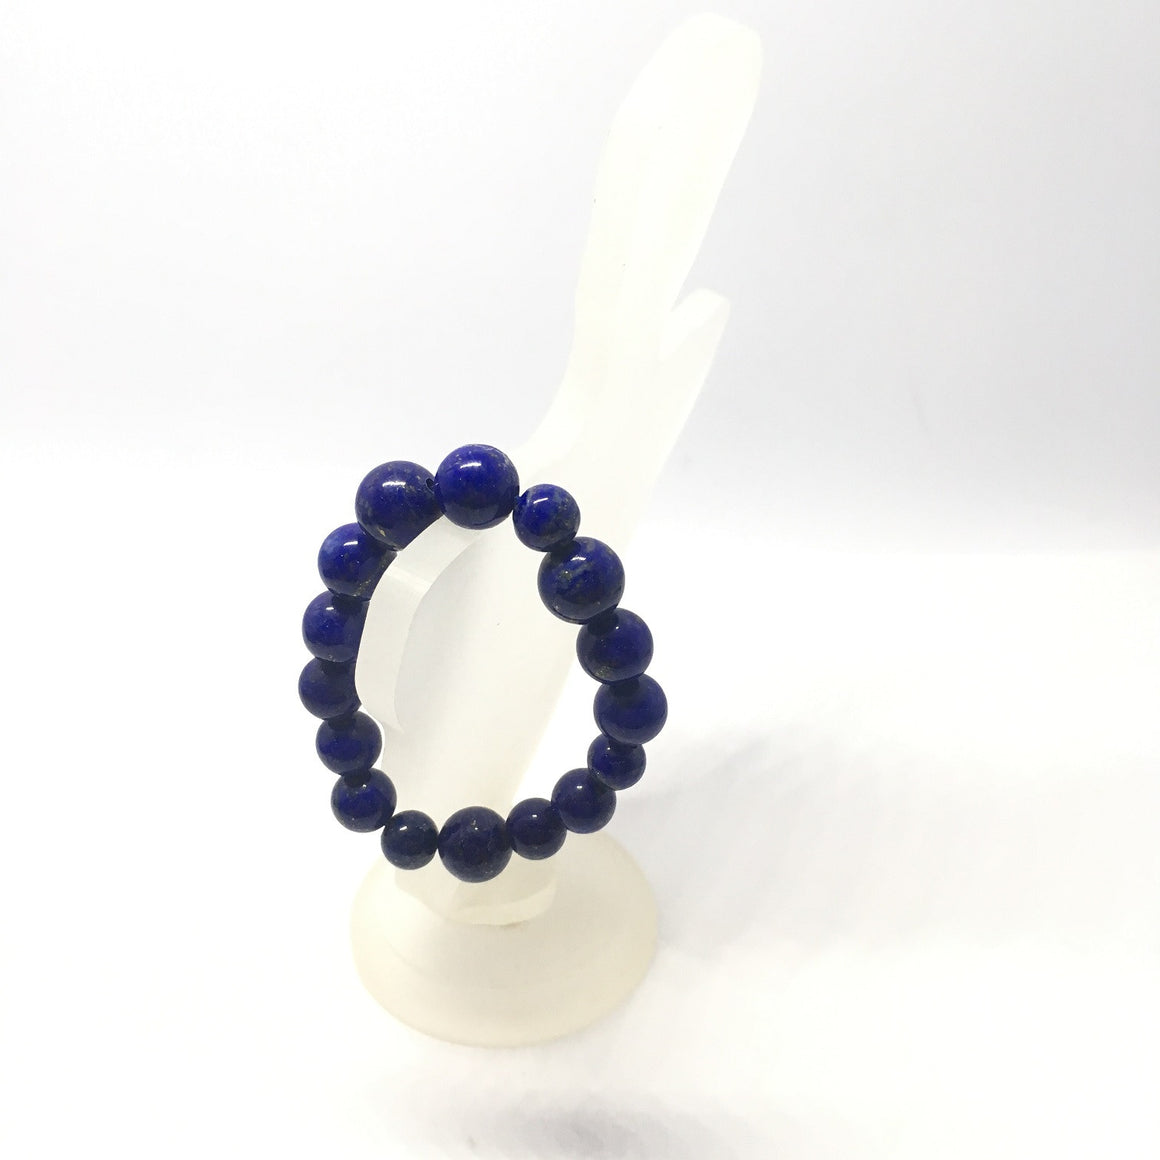 63.30 Carat , 16 Round Beads Handmade Bracelet With Elastic Stretch,Grade AAA Quality Beads